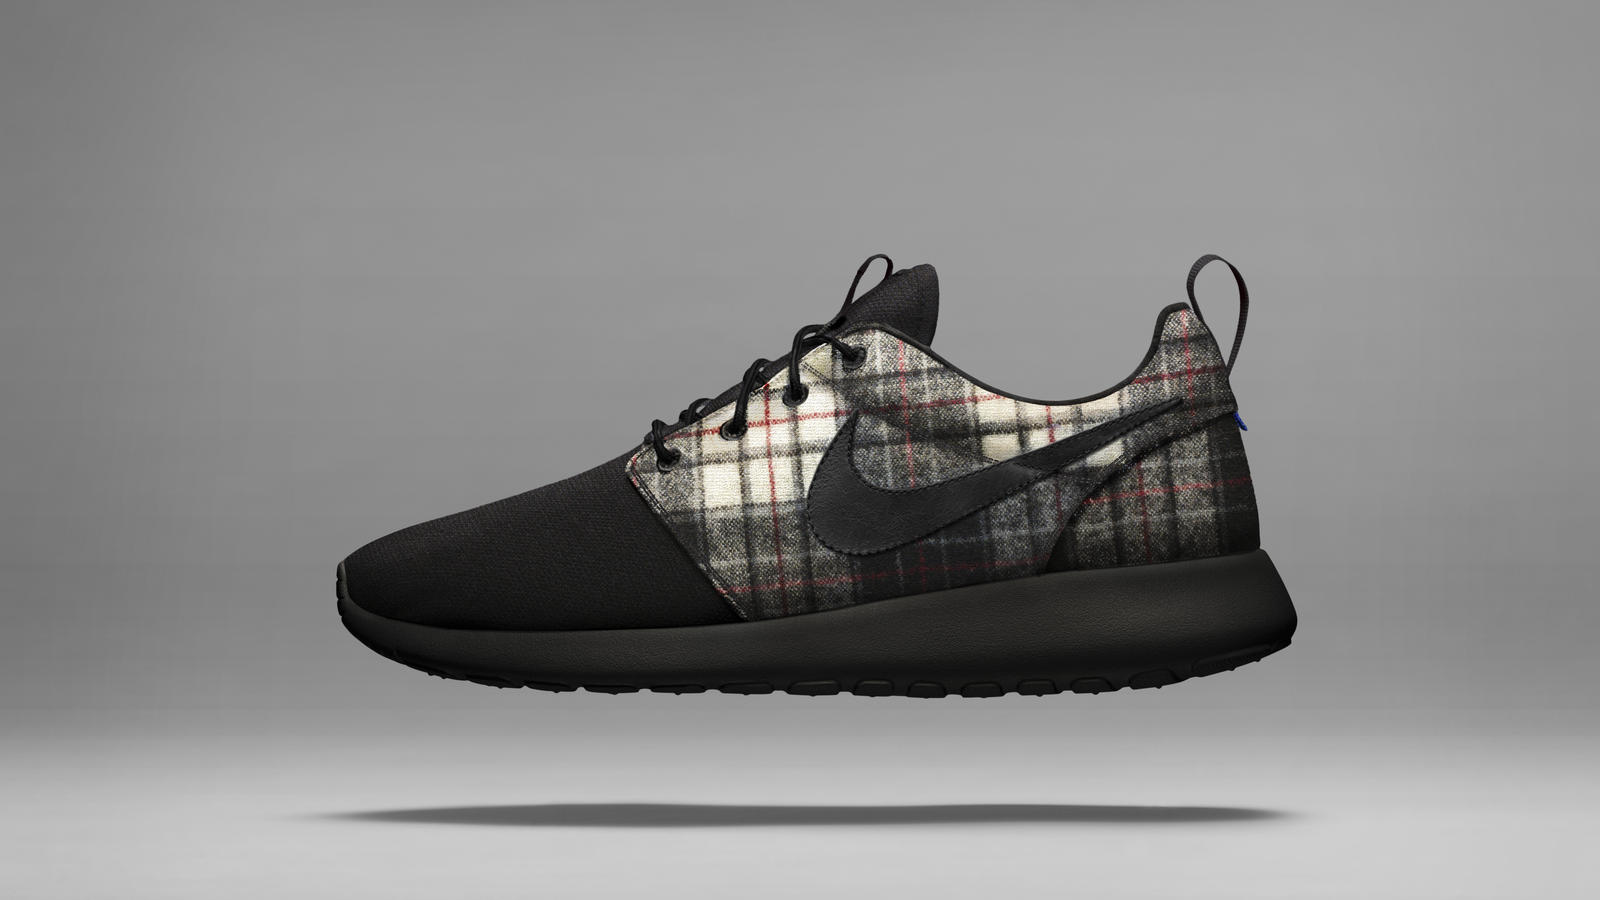 ho14_nikeid_pendleton_collection_roshe_lo_sboot